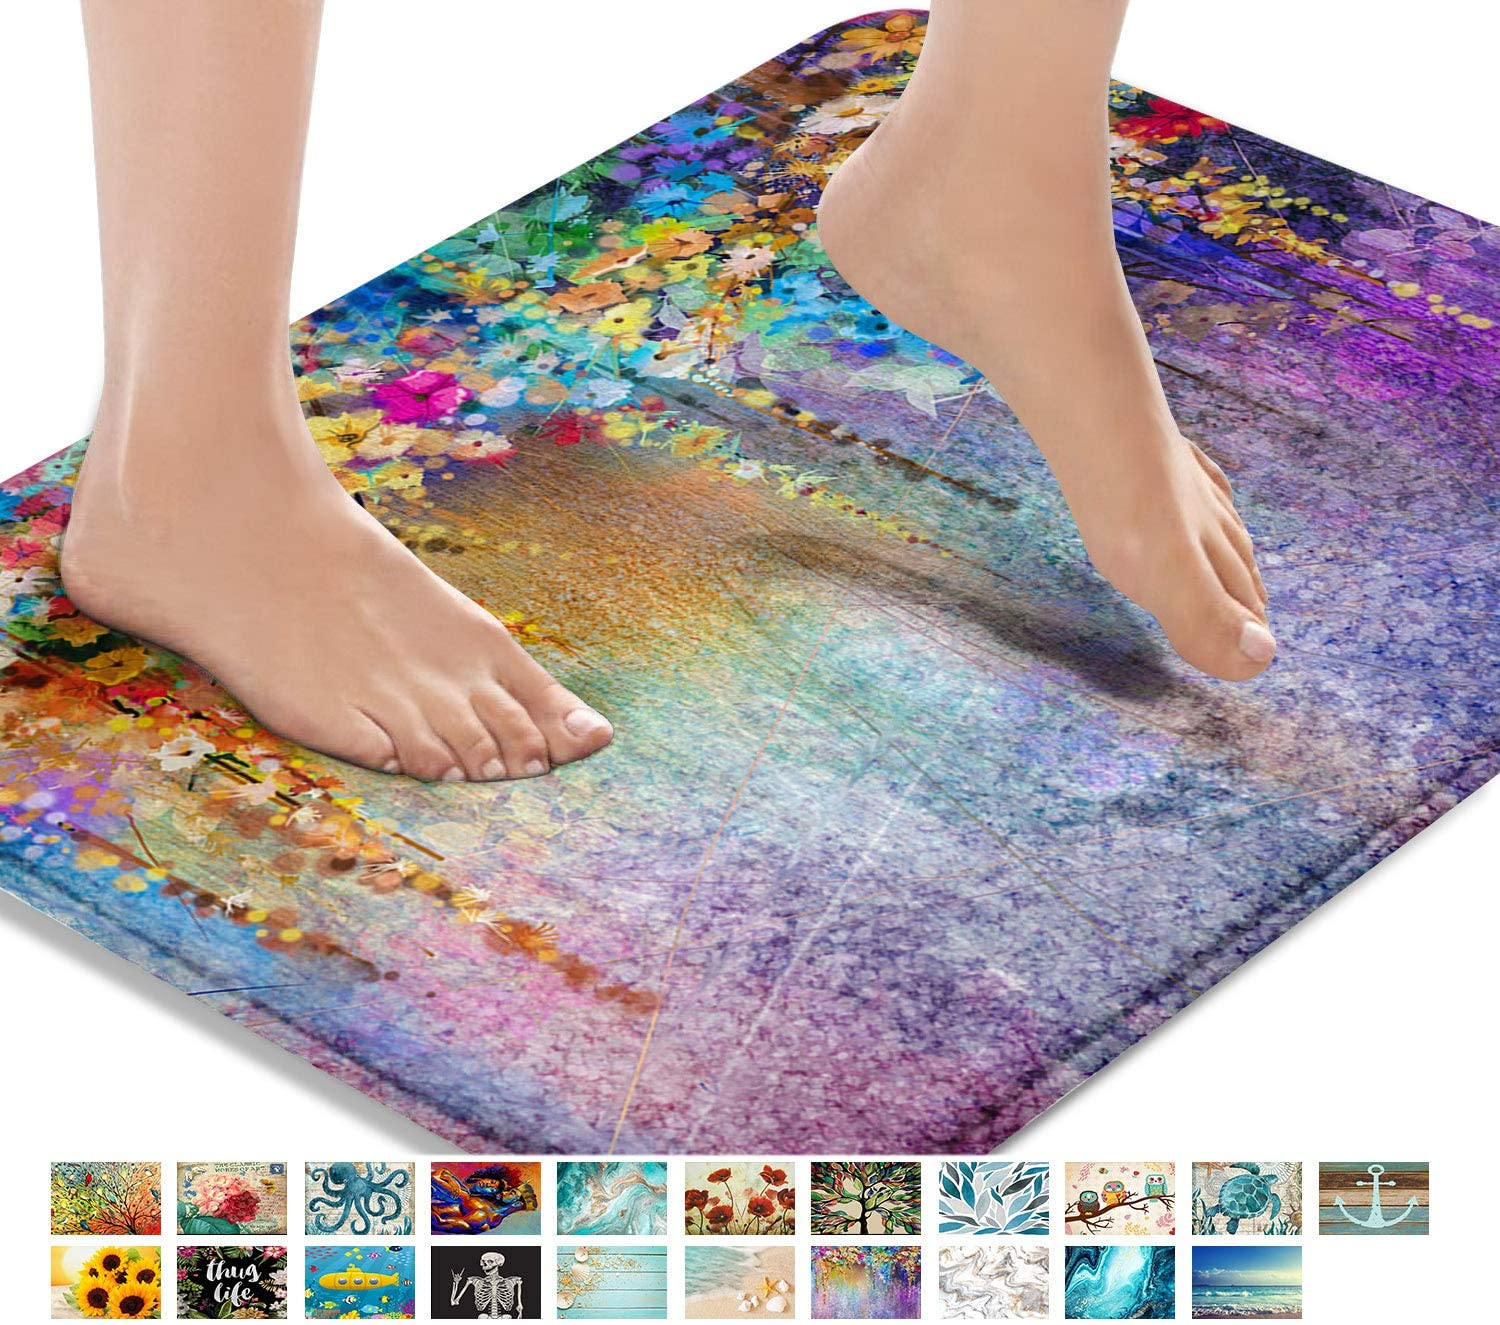 Britimes Bath Mats for Bathroom, Bathroom Mats Rugs No Silp, Colorful Purple Flower Washable Cover Floor Rug Carpets Floor Mat Bathroom Decorations 18x30 Inches for Kitchen Bedroom Indoor